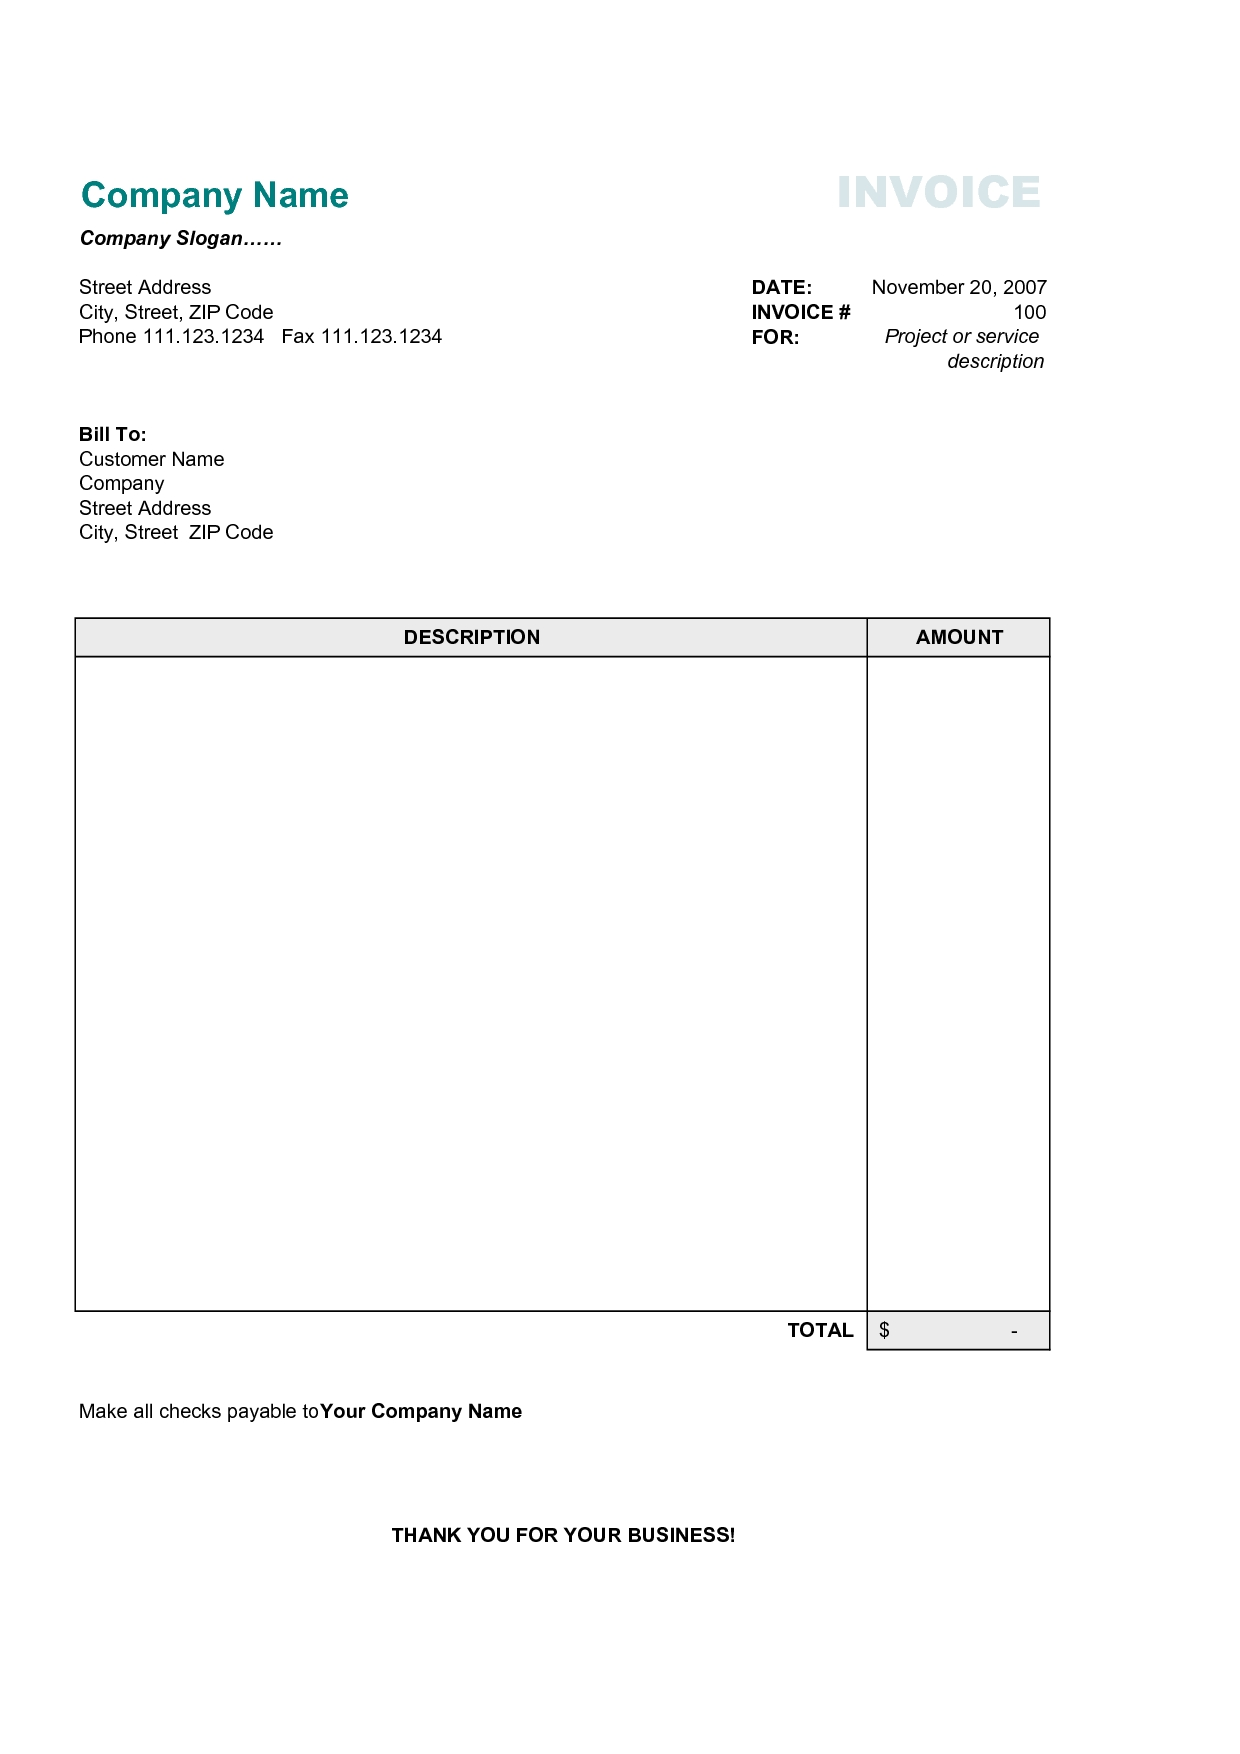 simple invoice template invoice example simple invoice template 1000 images about invoice shops words and for basic template microsoft word 53610e5355fbffe2210d68b0943